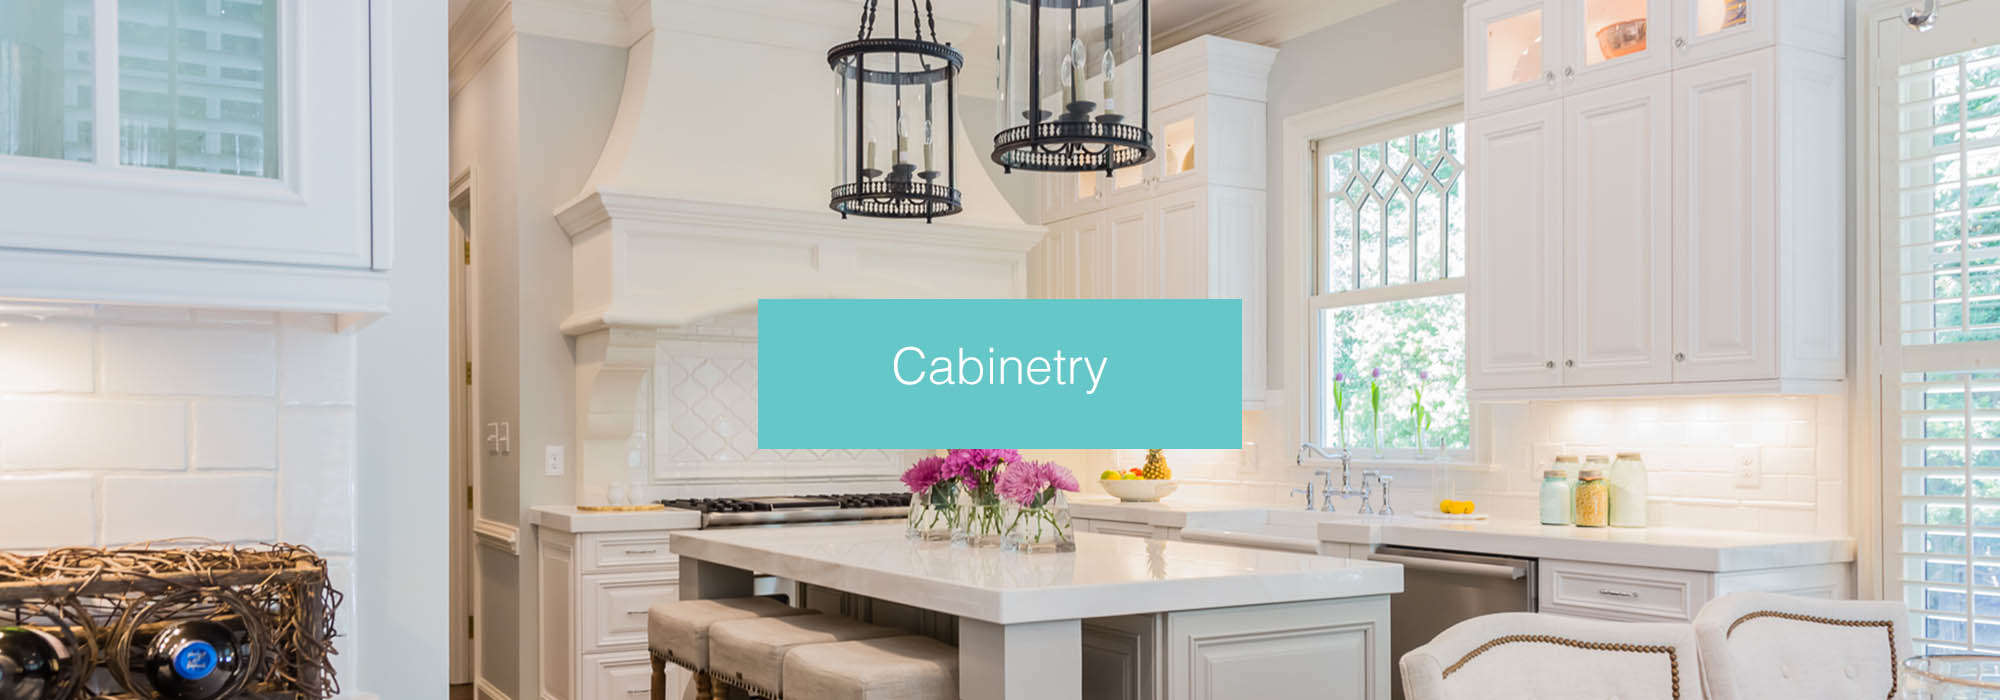 Cabinetry | Kitchen & Bath Galleries